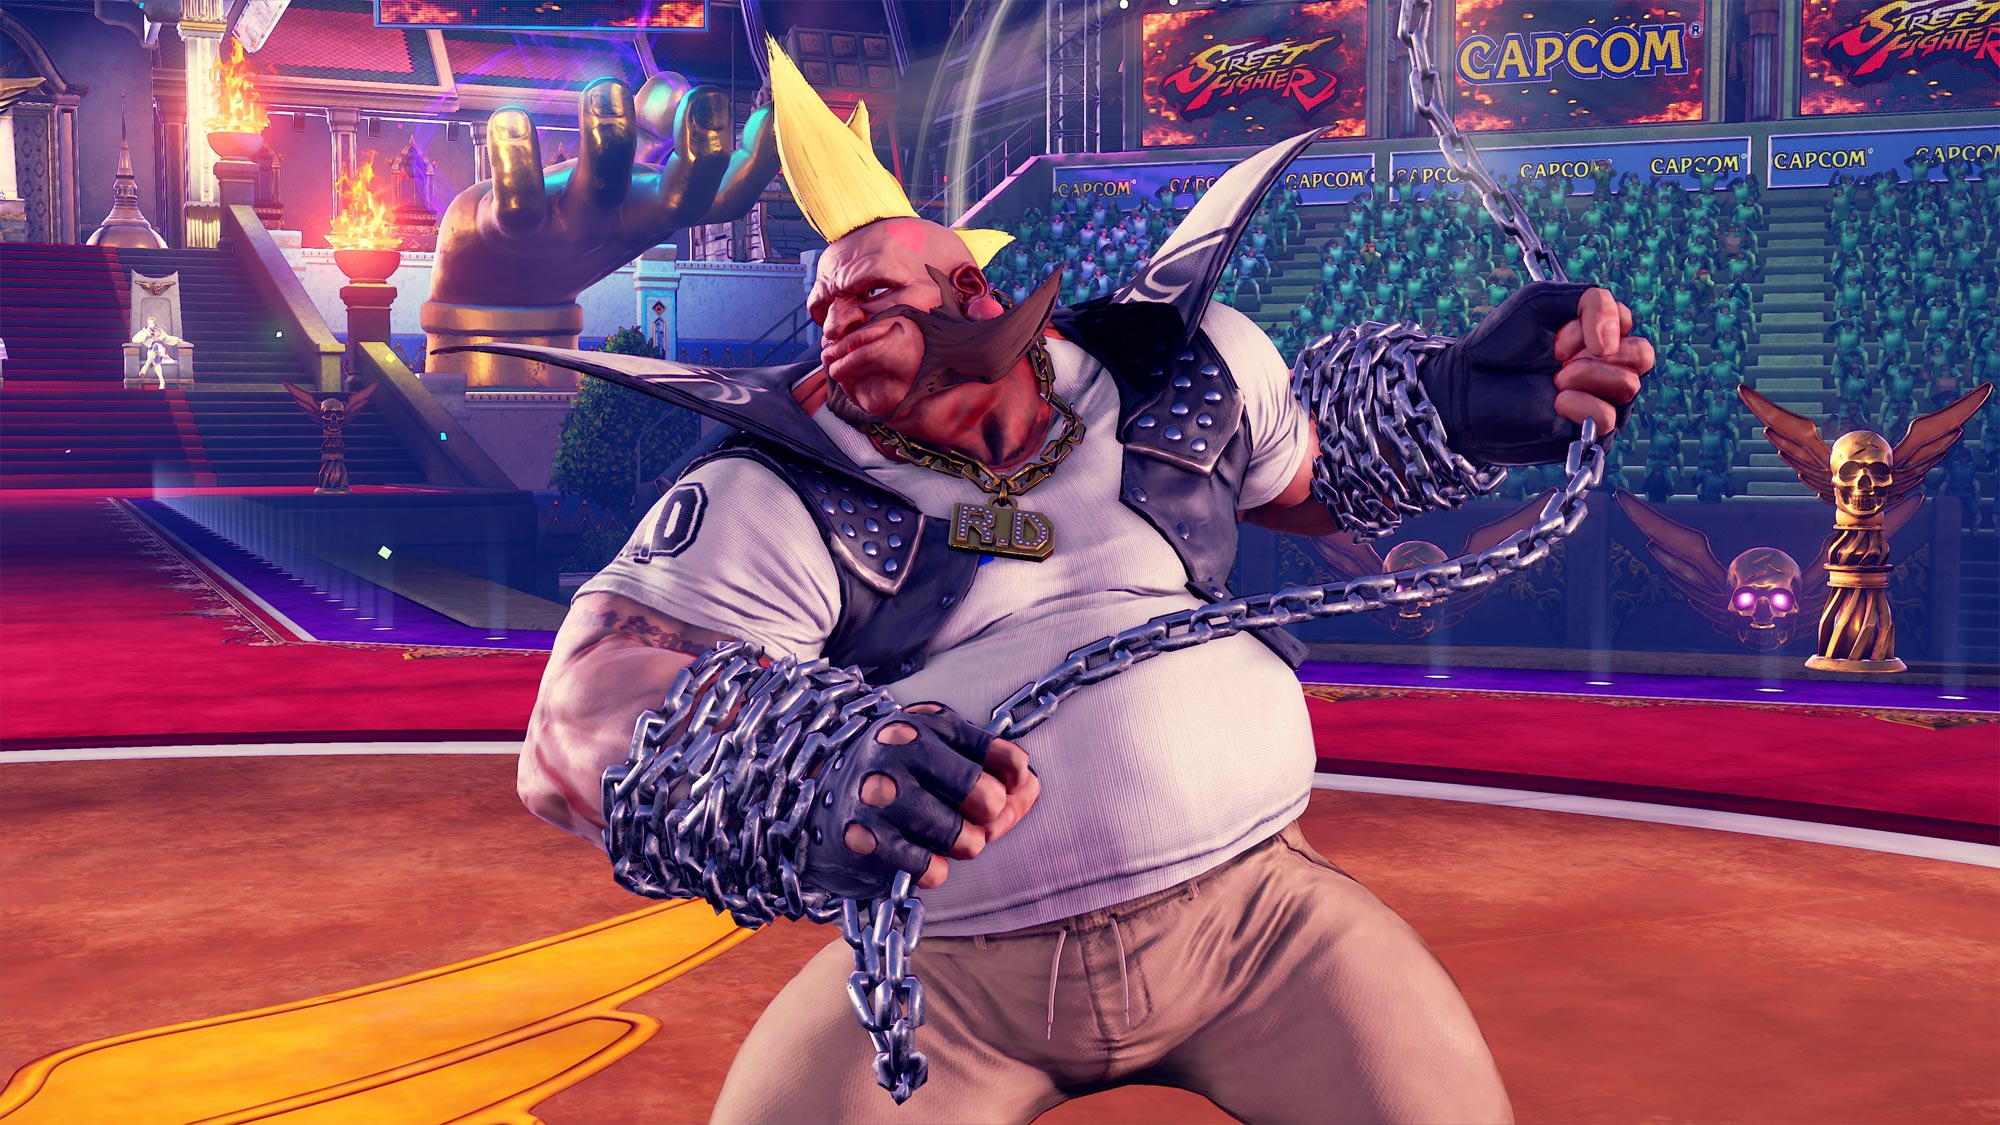 MenaRD's Street Fighter 5 Capcom Cup Champion's Choice Birdie costume 6 out of 9 image gallery